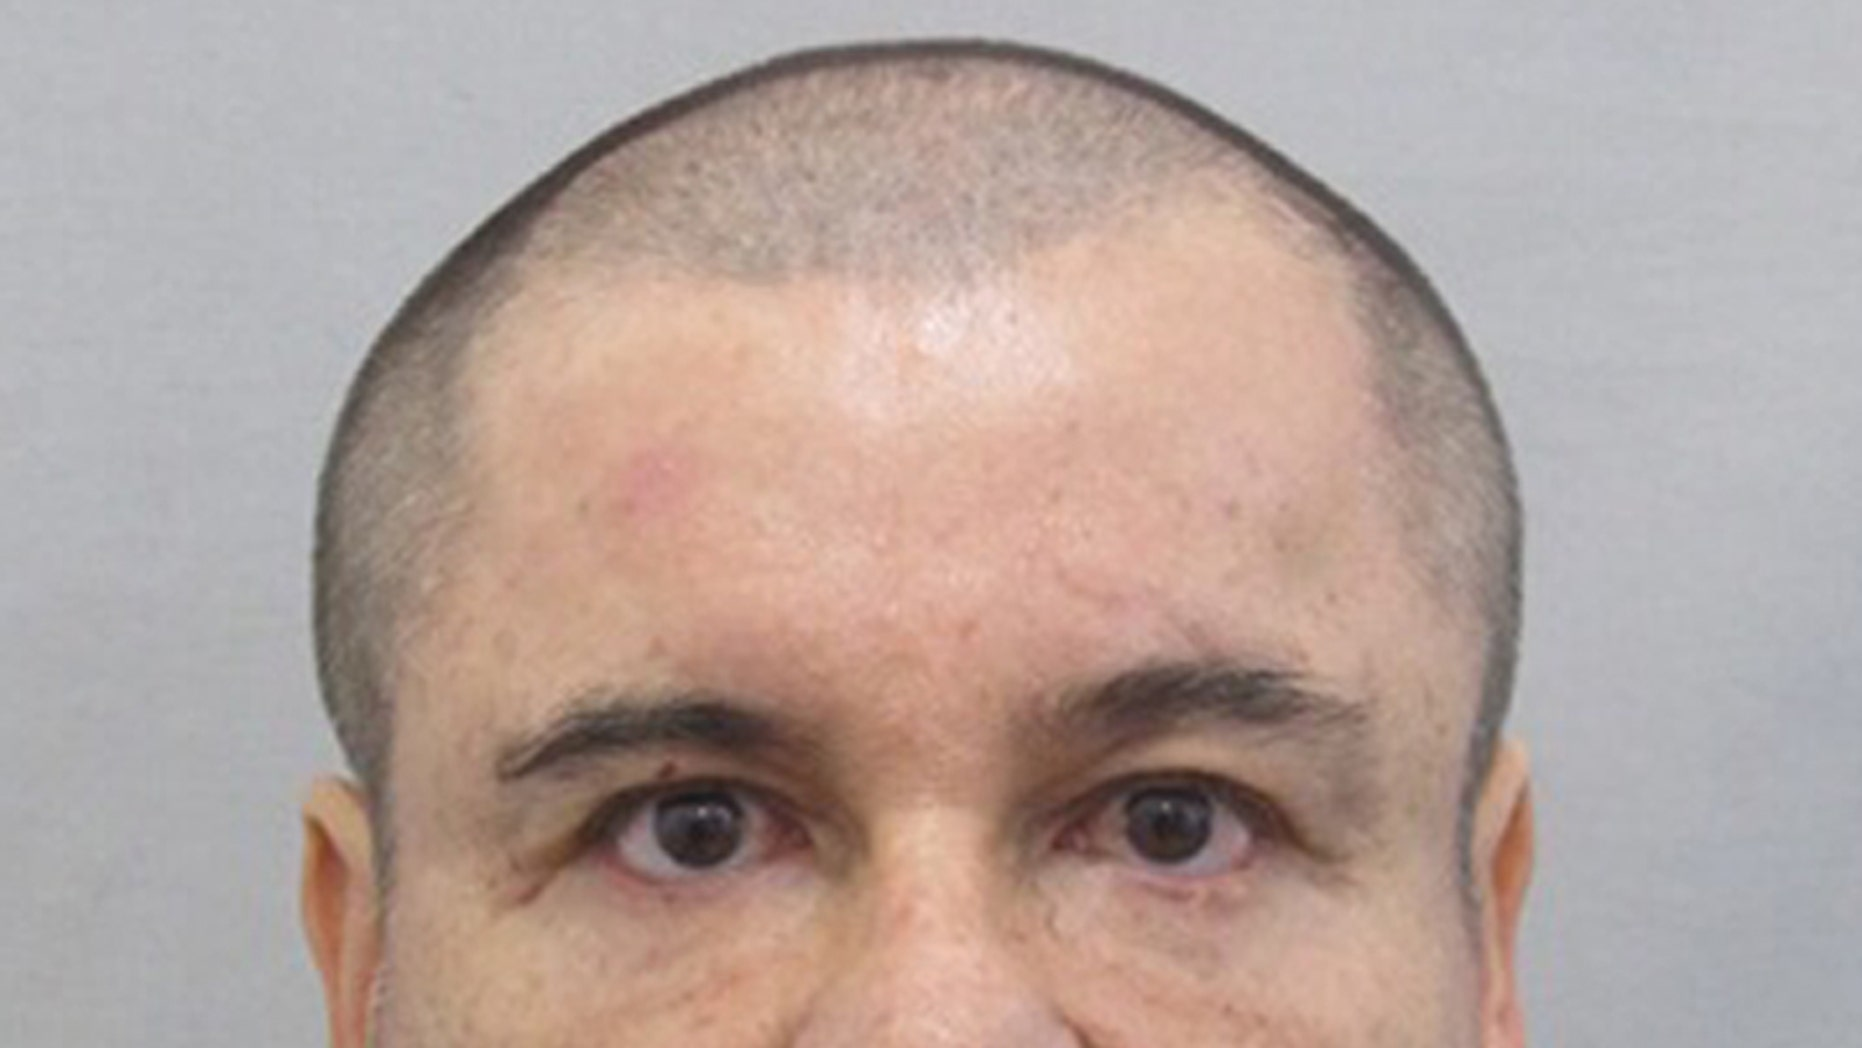 The most recent image of Joaquin 'El Chapo' Guzman before he escaped from prison on July 12, 2015.